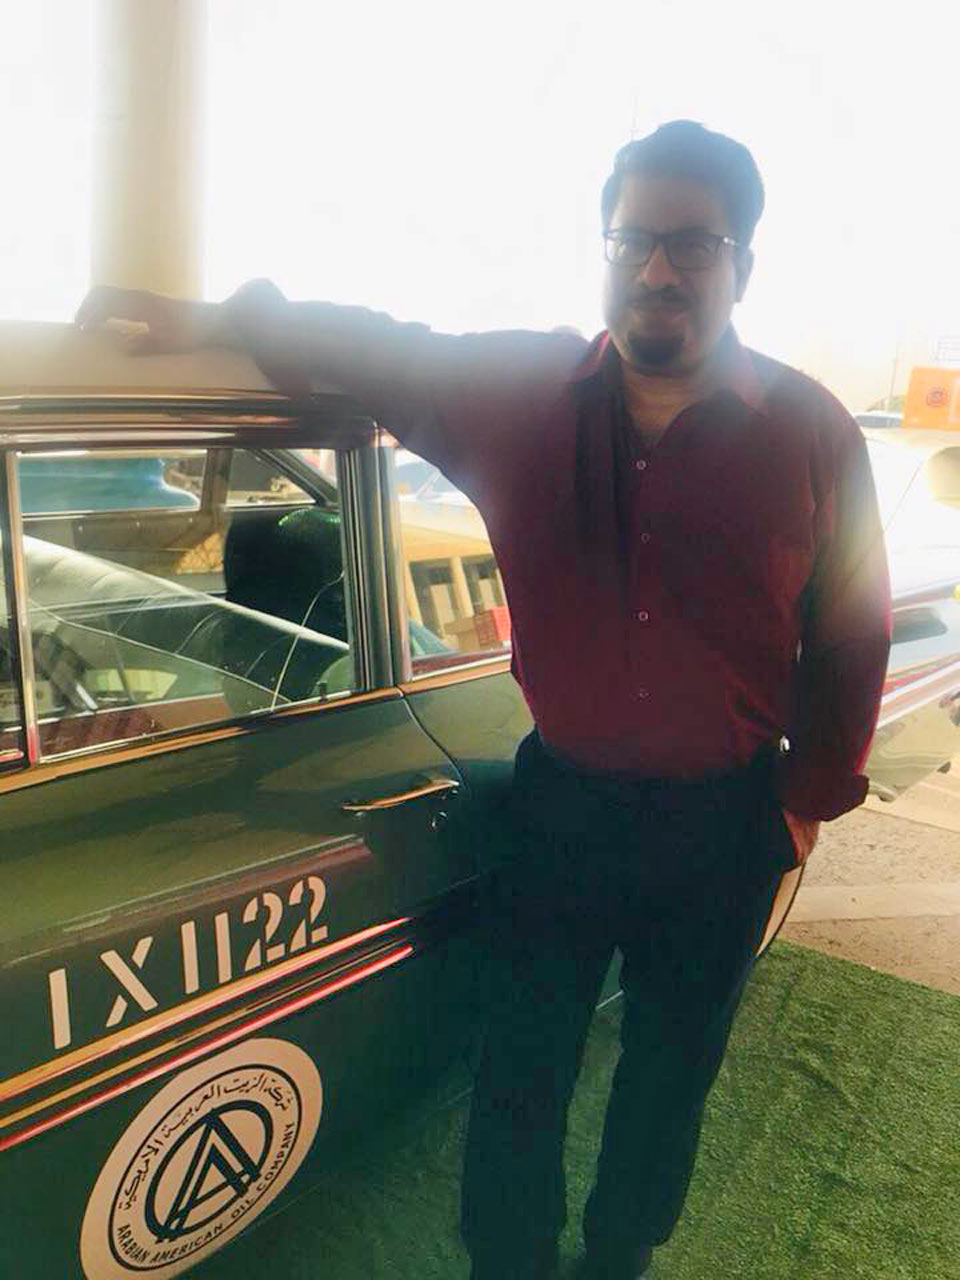 Nostalgia with Aramco Taxi